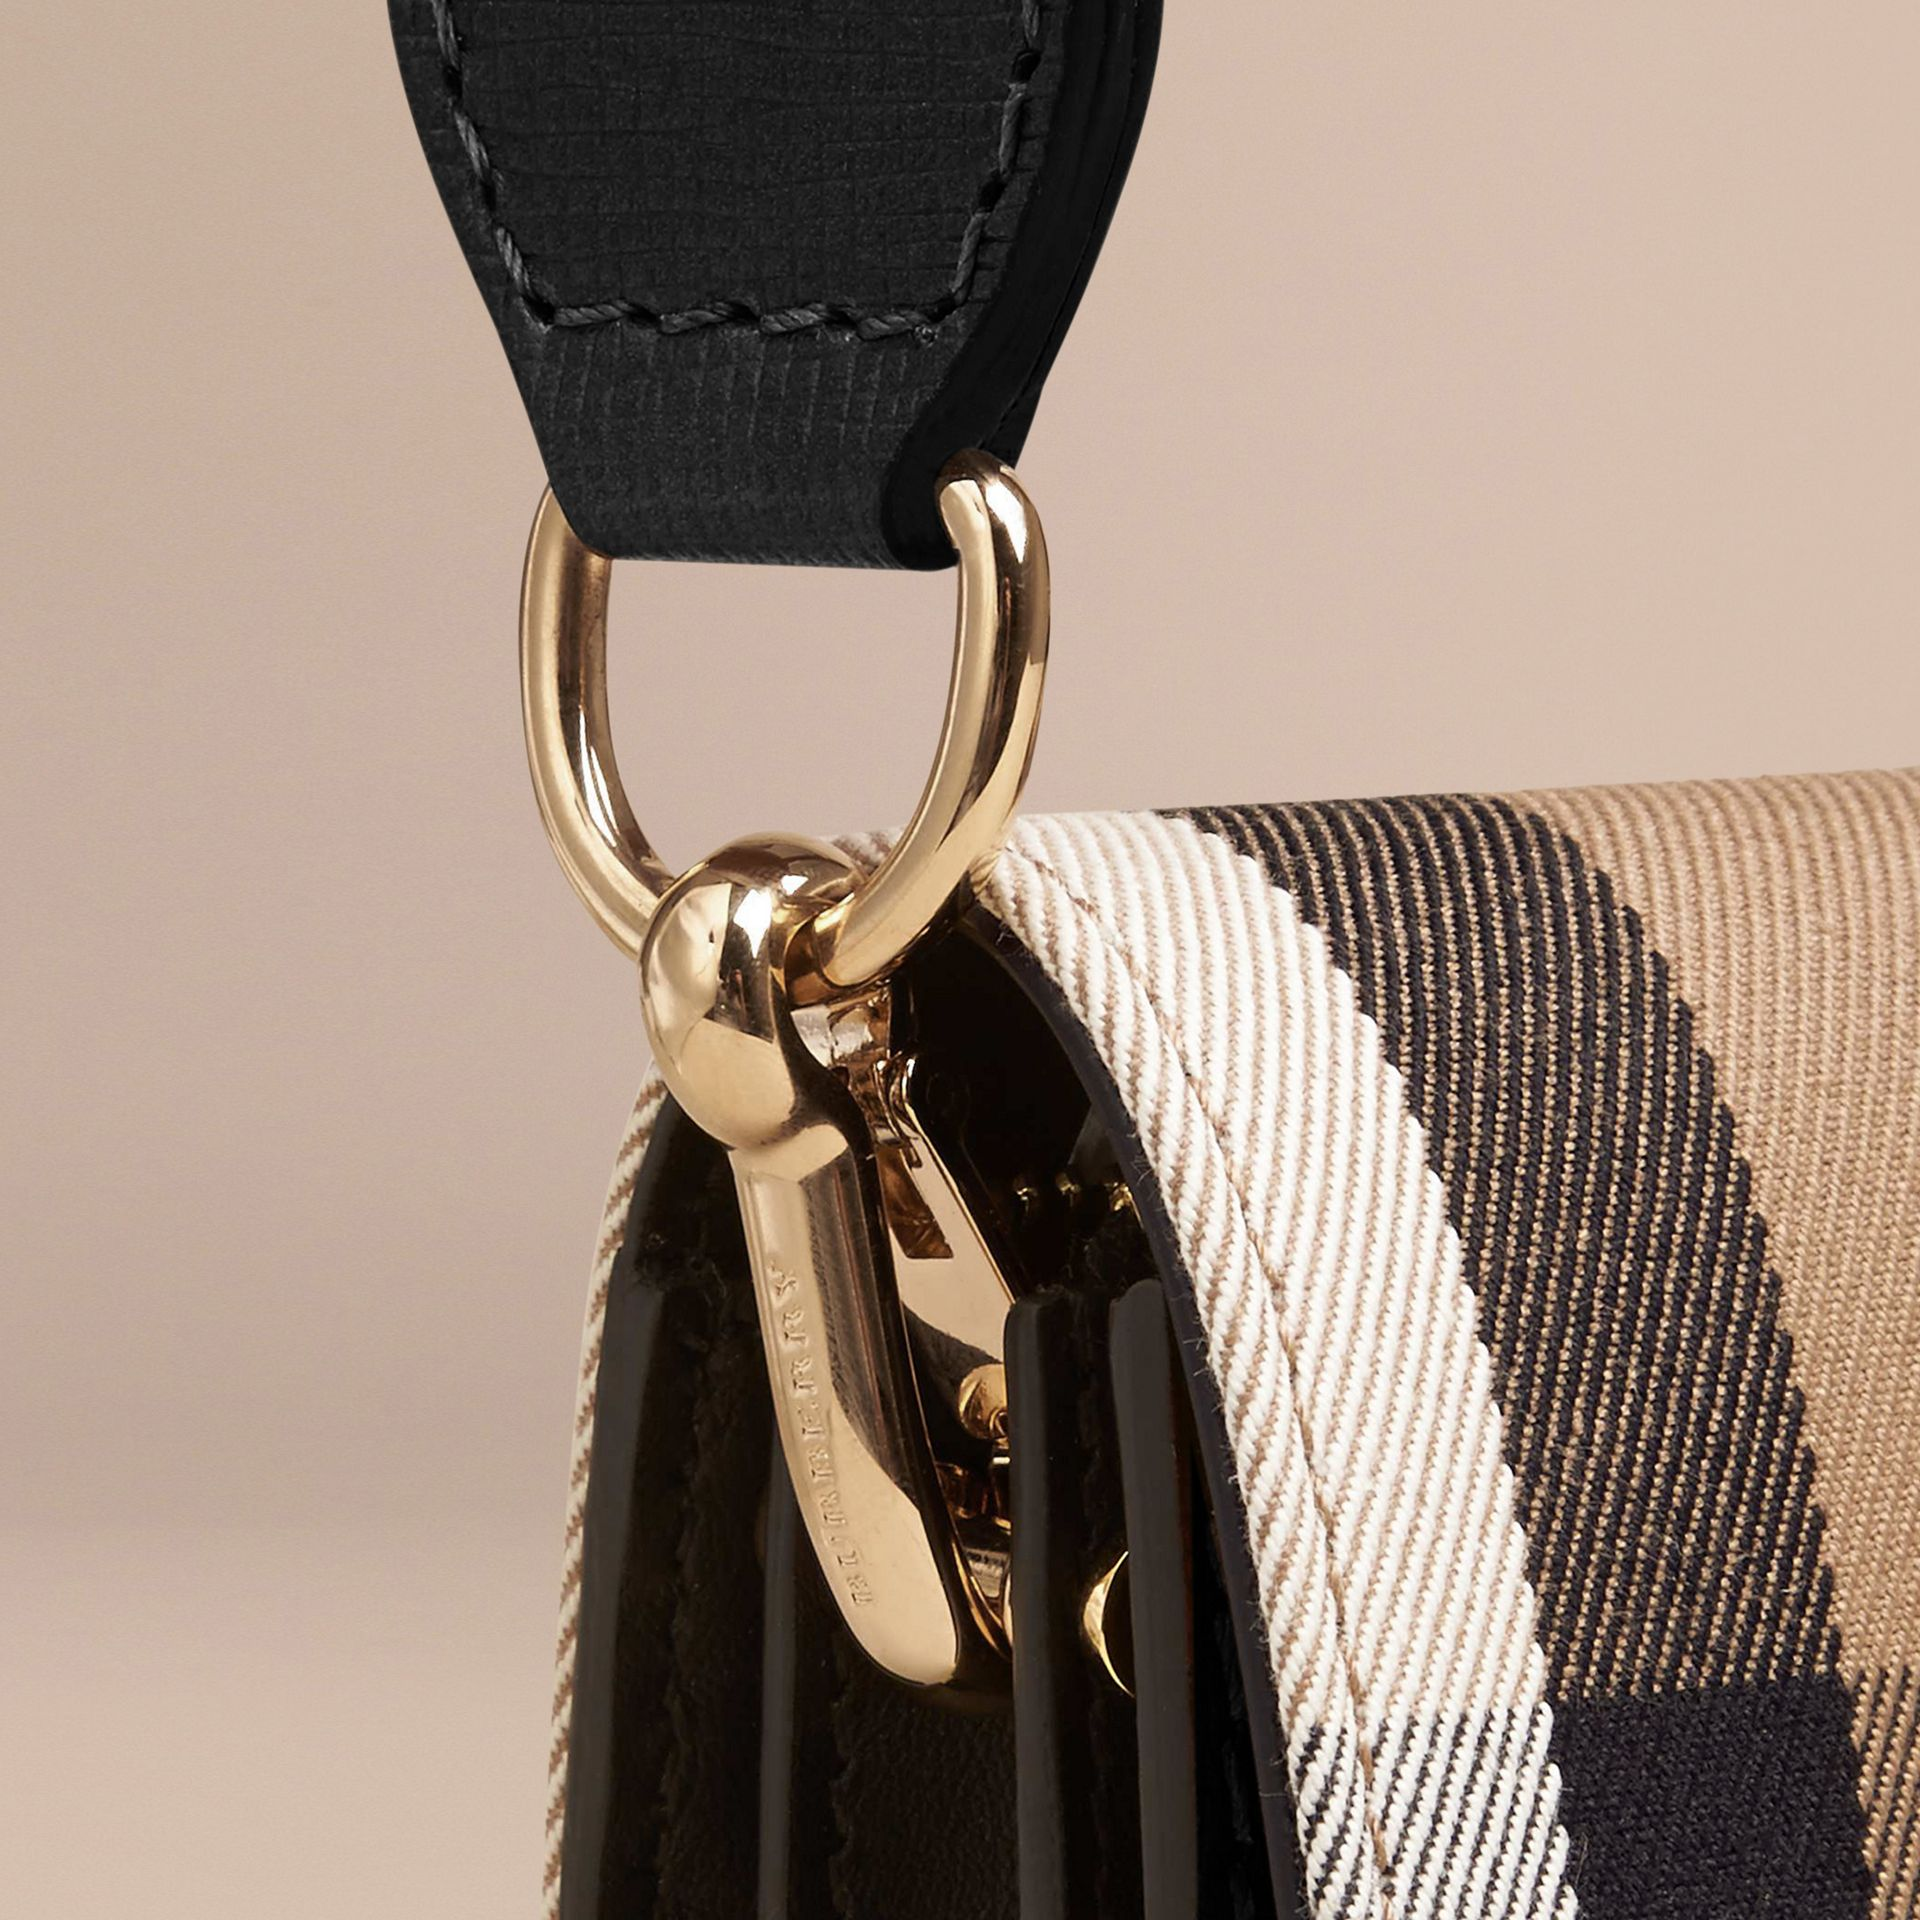 Noir Petit sac The Buckle en coton House check et cuir Noir - photo de la galerie 8